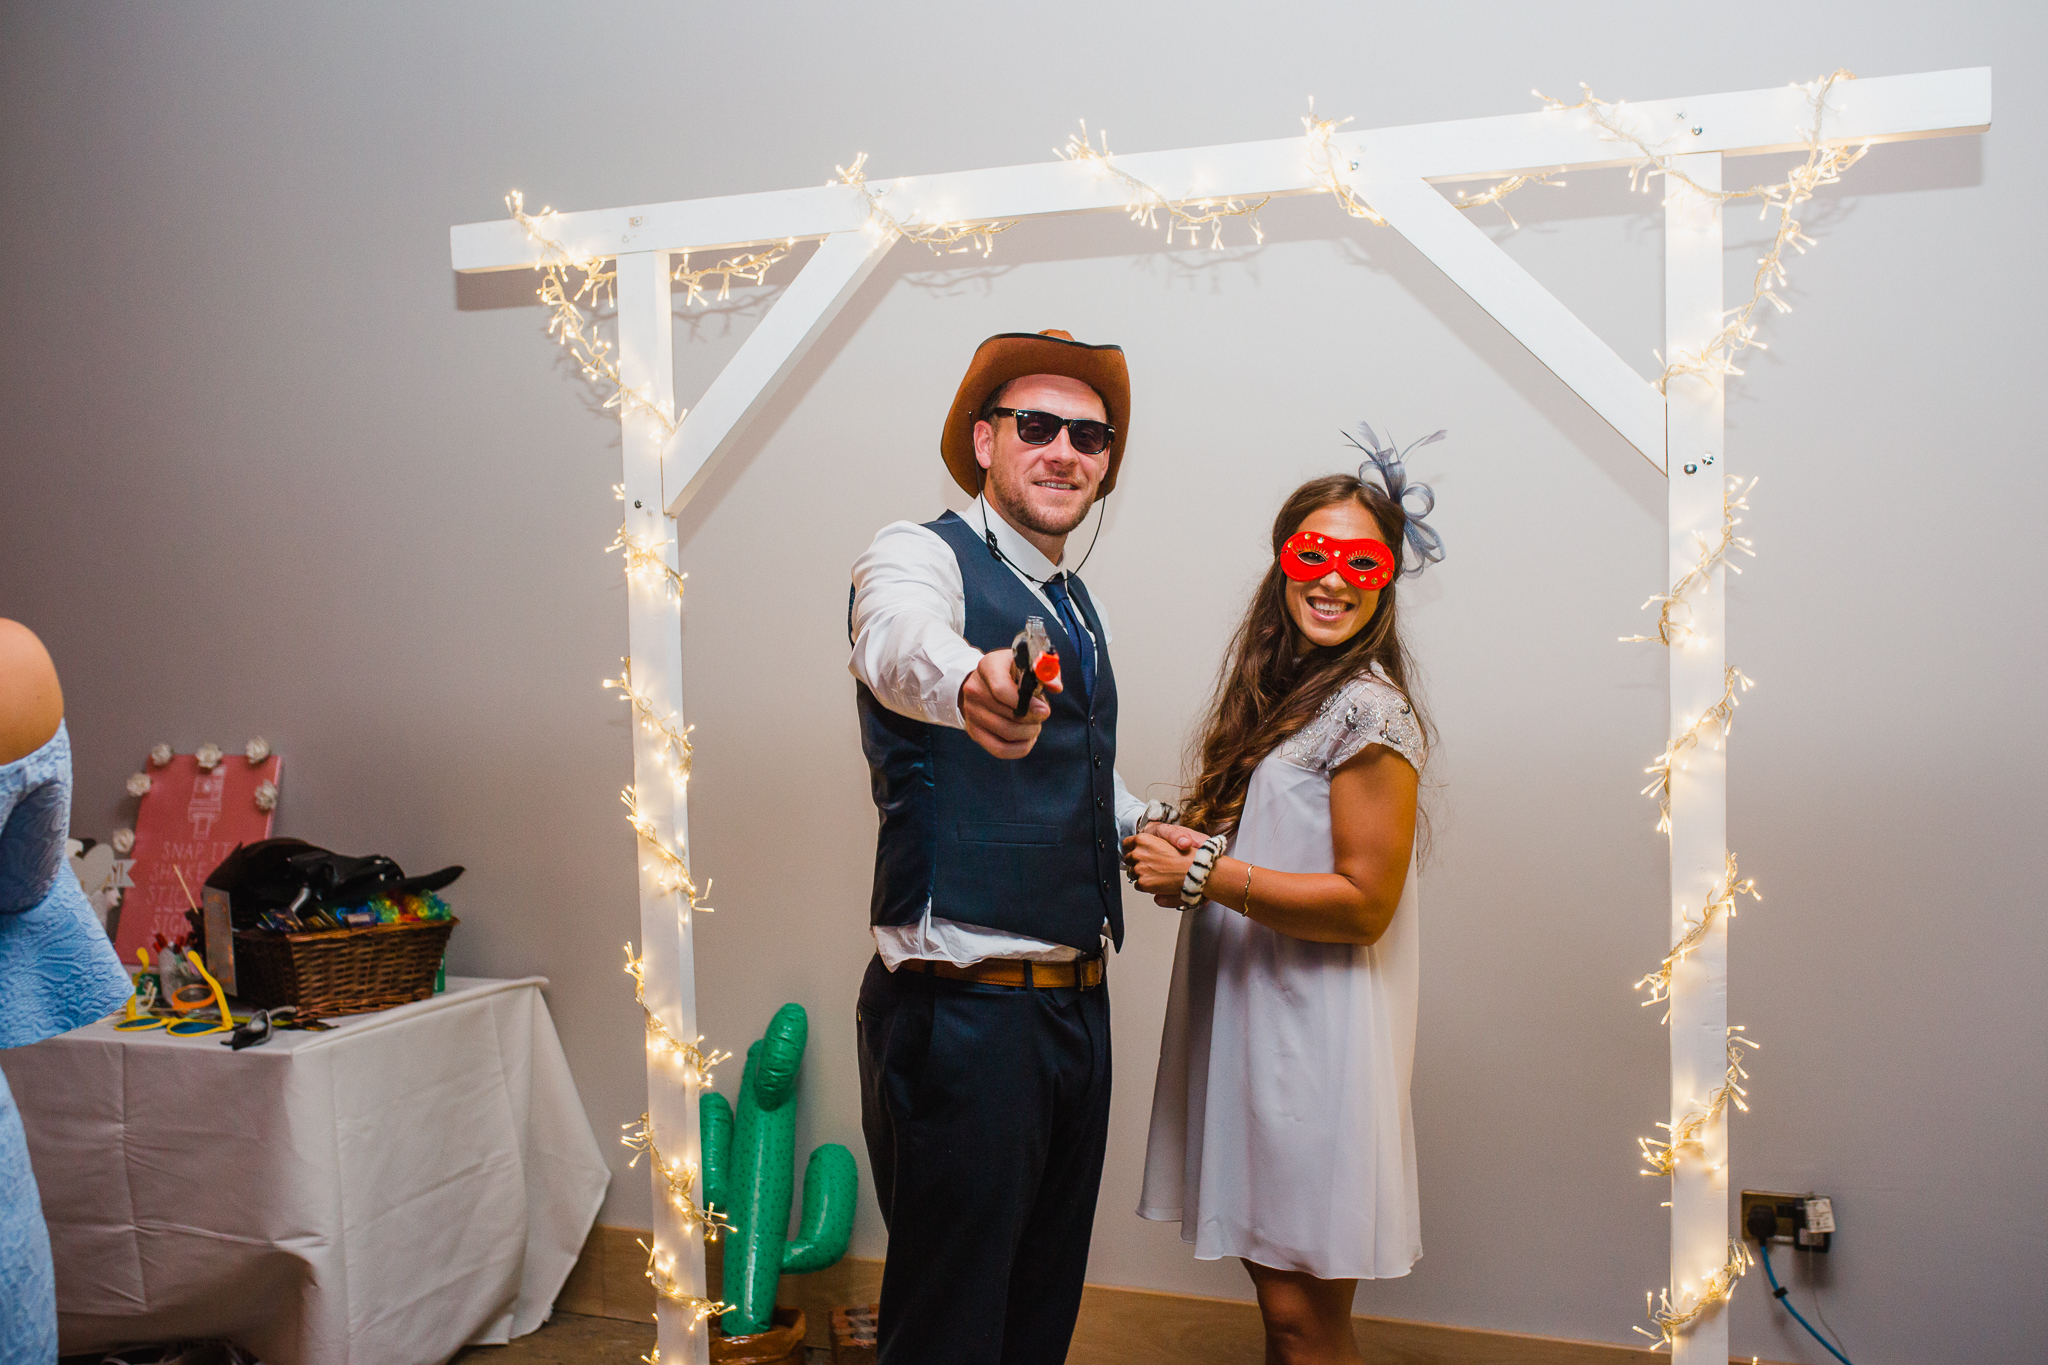 Jess and Ben - Liverpool wedding - wedding guests at the Photo Booth